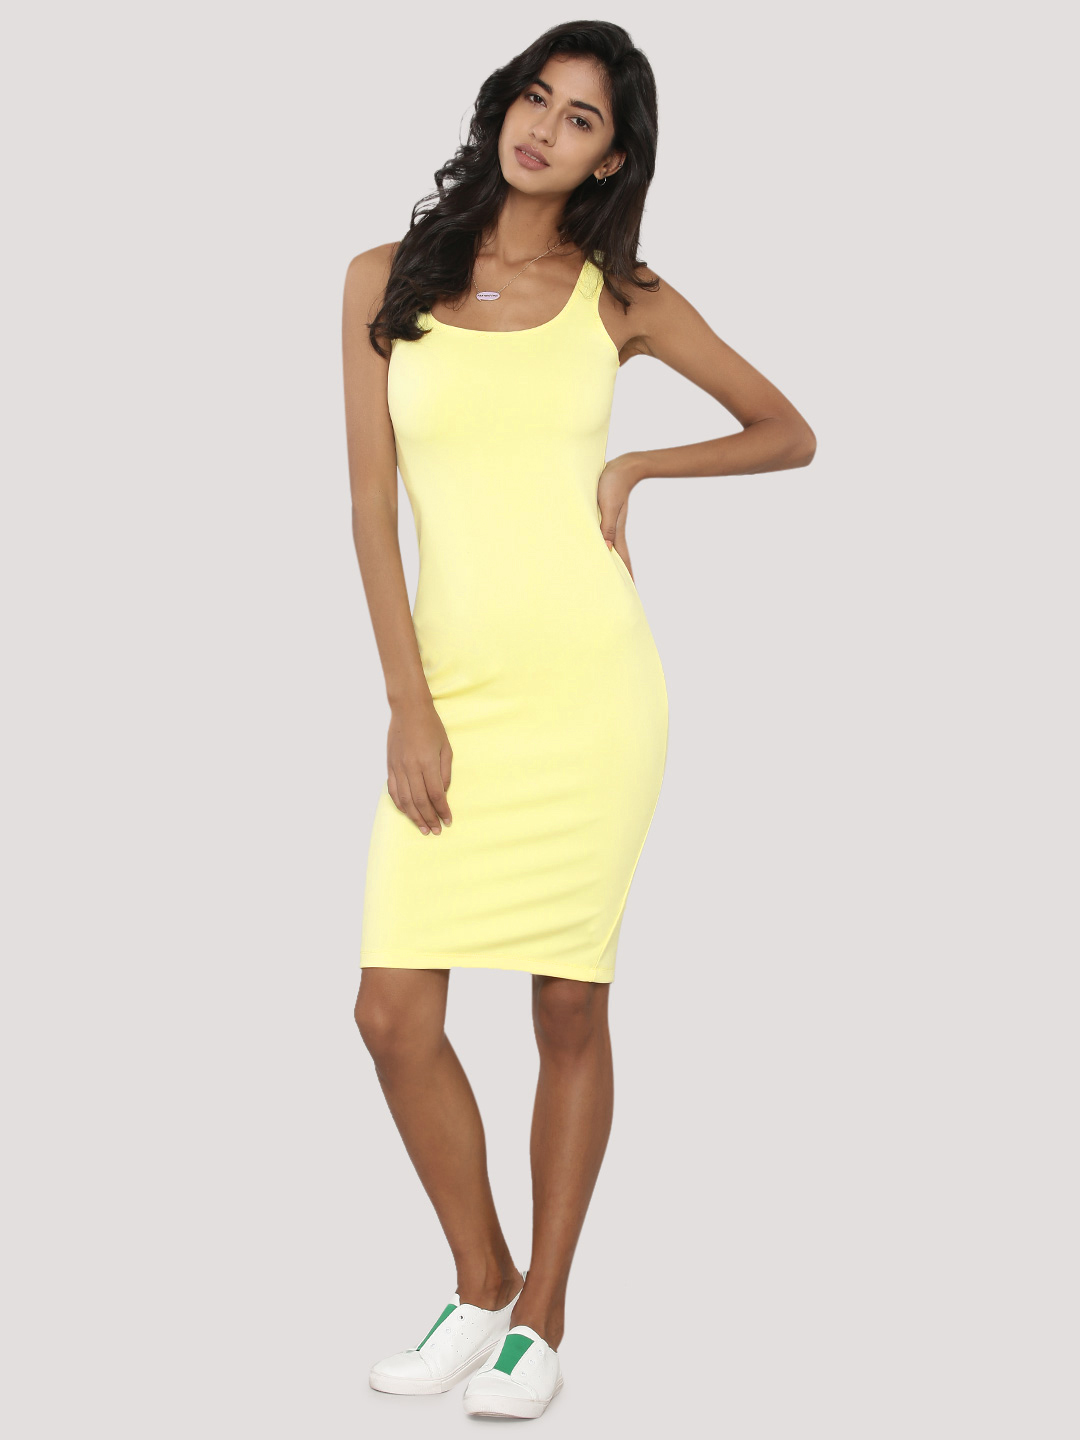 KOOVS Square Neck Bodycon Dres...